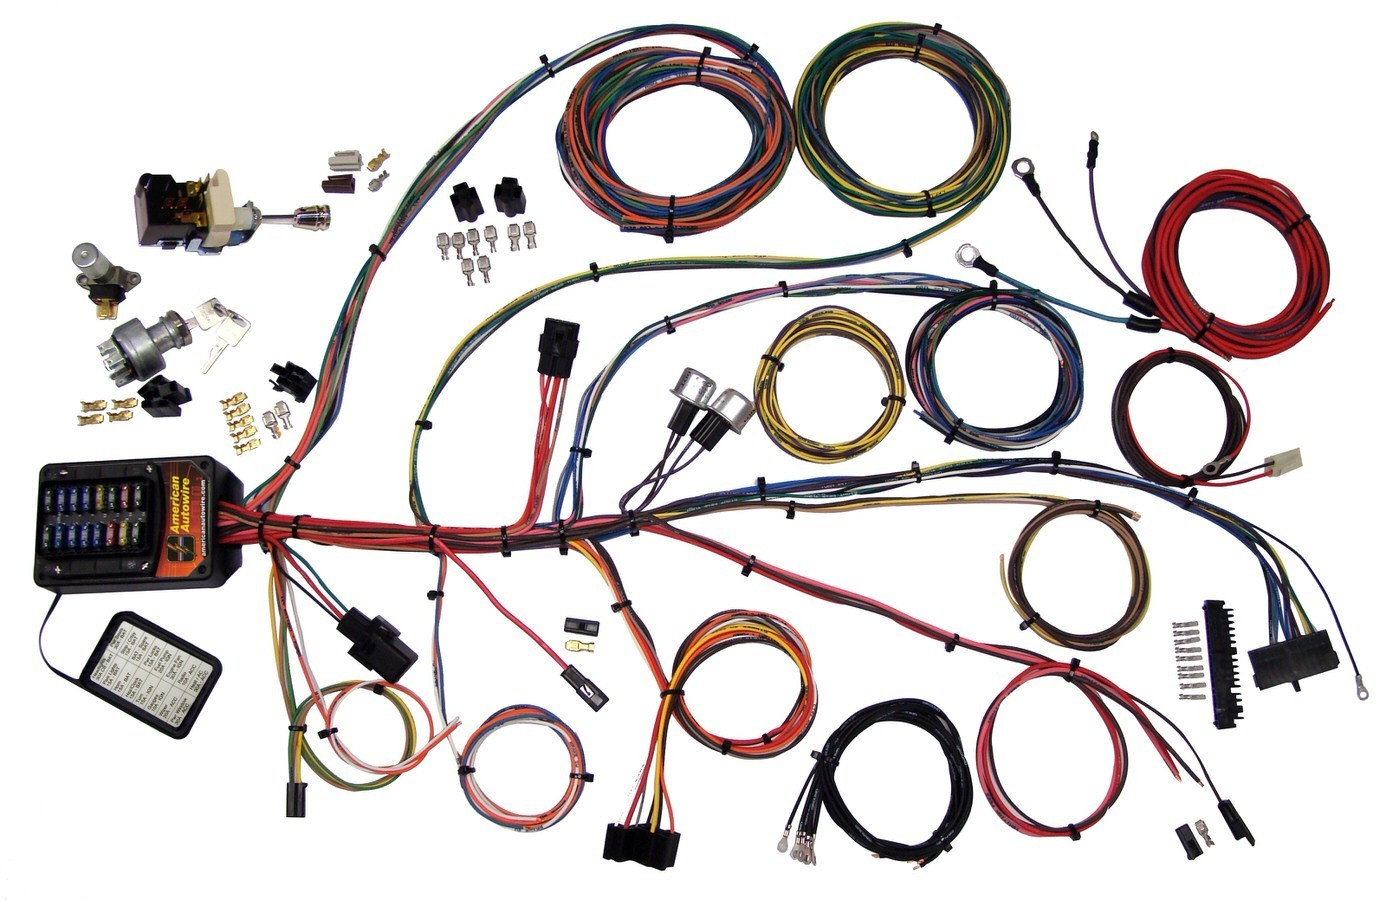 [DIAGRAM_09CH]  American Autowire 510006 Car Wiring Harness, Builder 19 Seri | Gm Automotive Wiring Harness |  | Dan Hellmer Racing Solutions